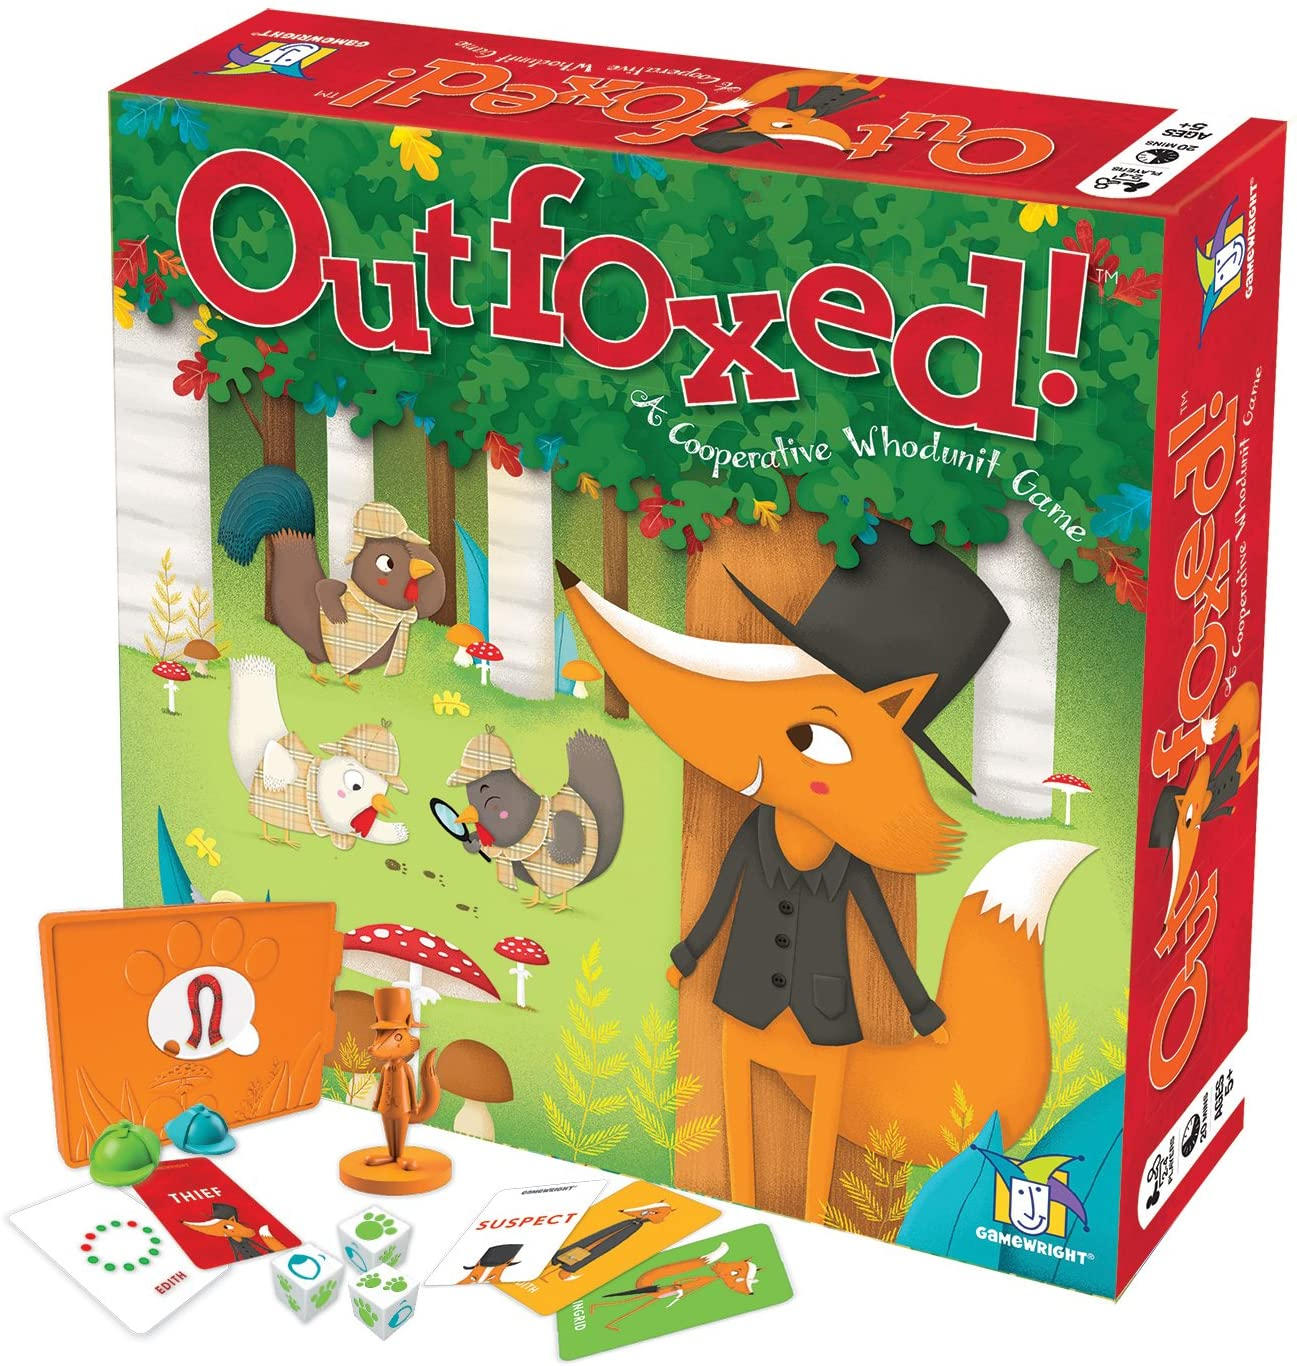 Amazon.com: Gamewright Outfoxed! A Cooperative Whodunit Board Game for Kids  5+, Multi-colored, Standard, Model Number: 418: Toys & Games